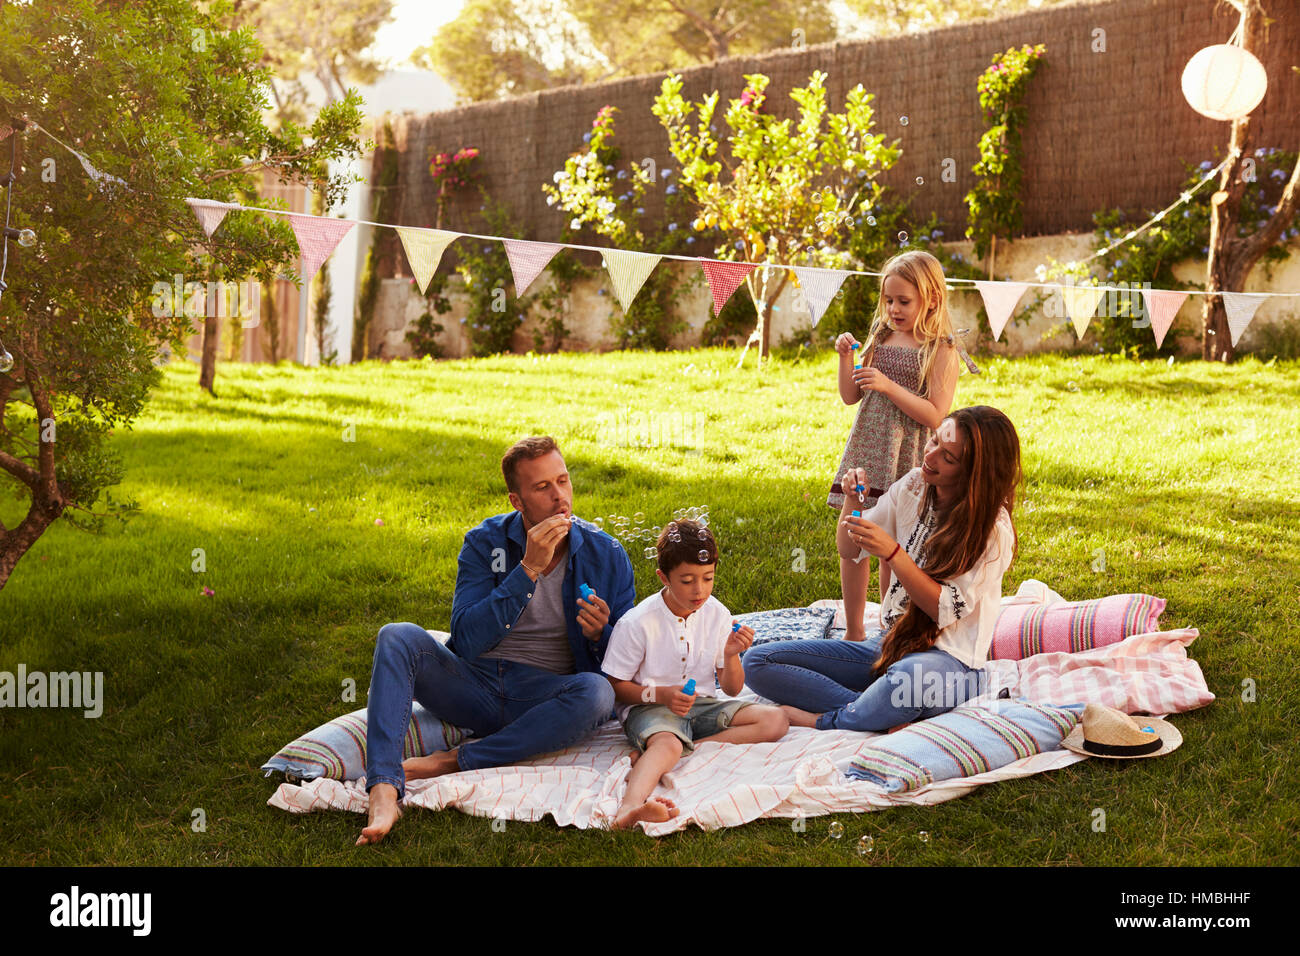 Parents Blowing Bubbles With Children On Blanket In Garden - Stock Image